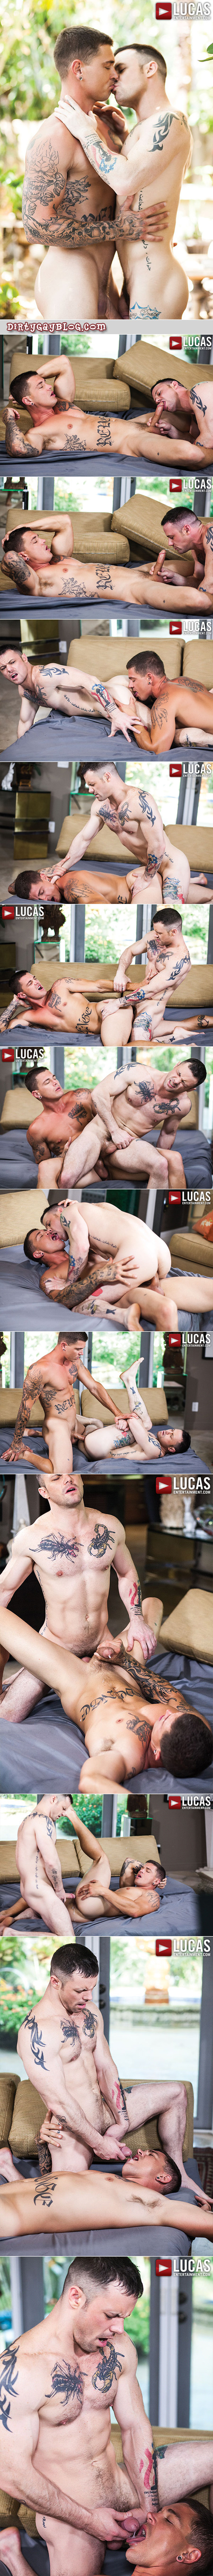 Muscular gay-for-pay porn stars flip-fuck bareback.